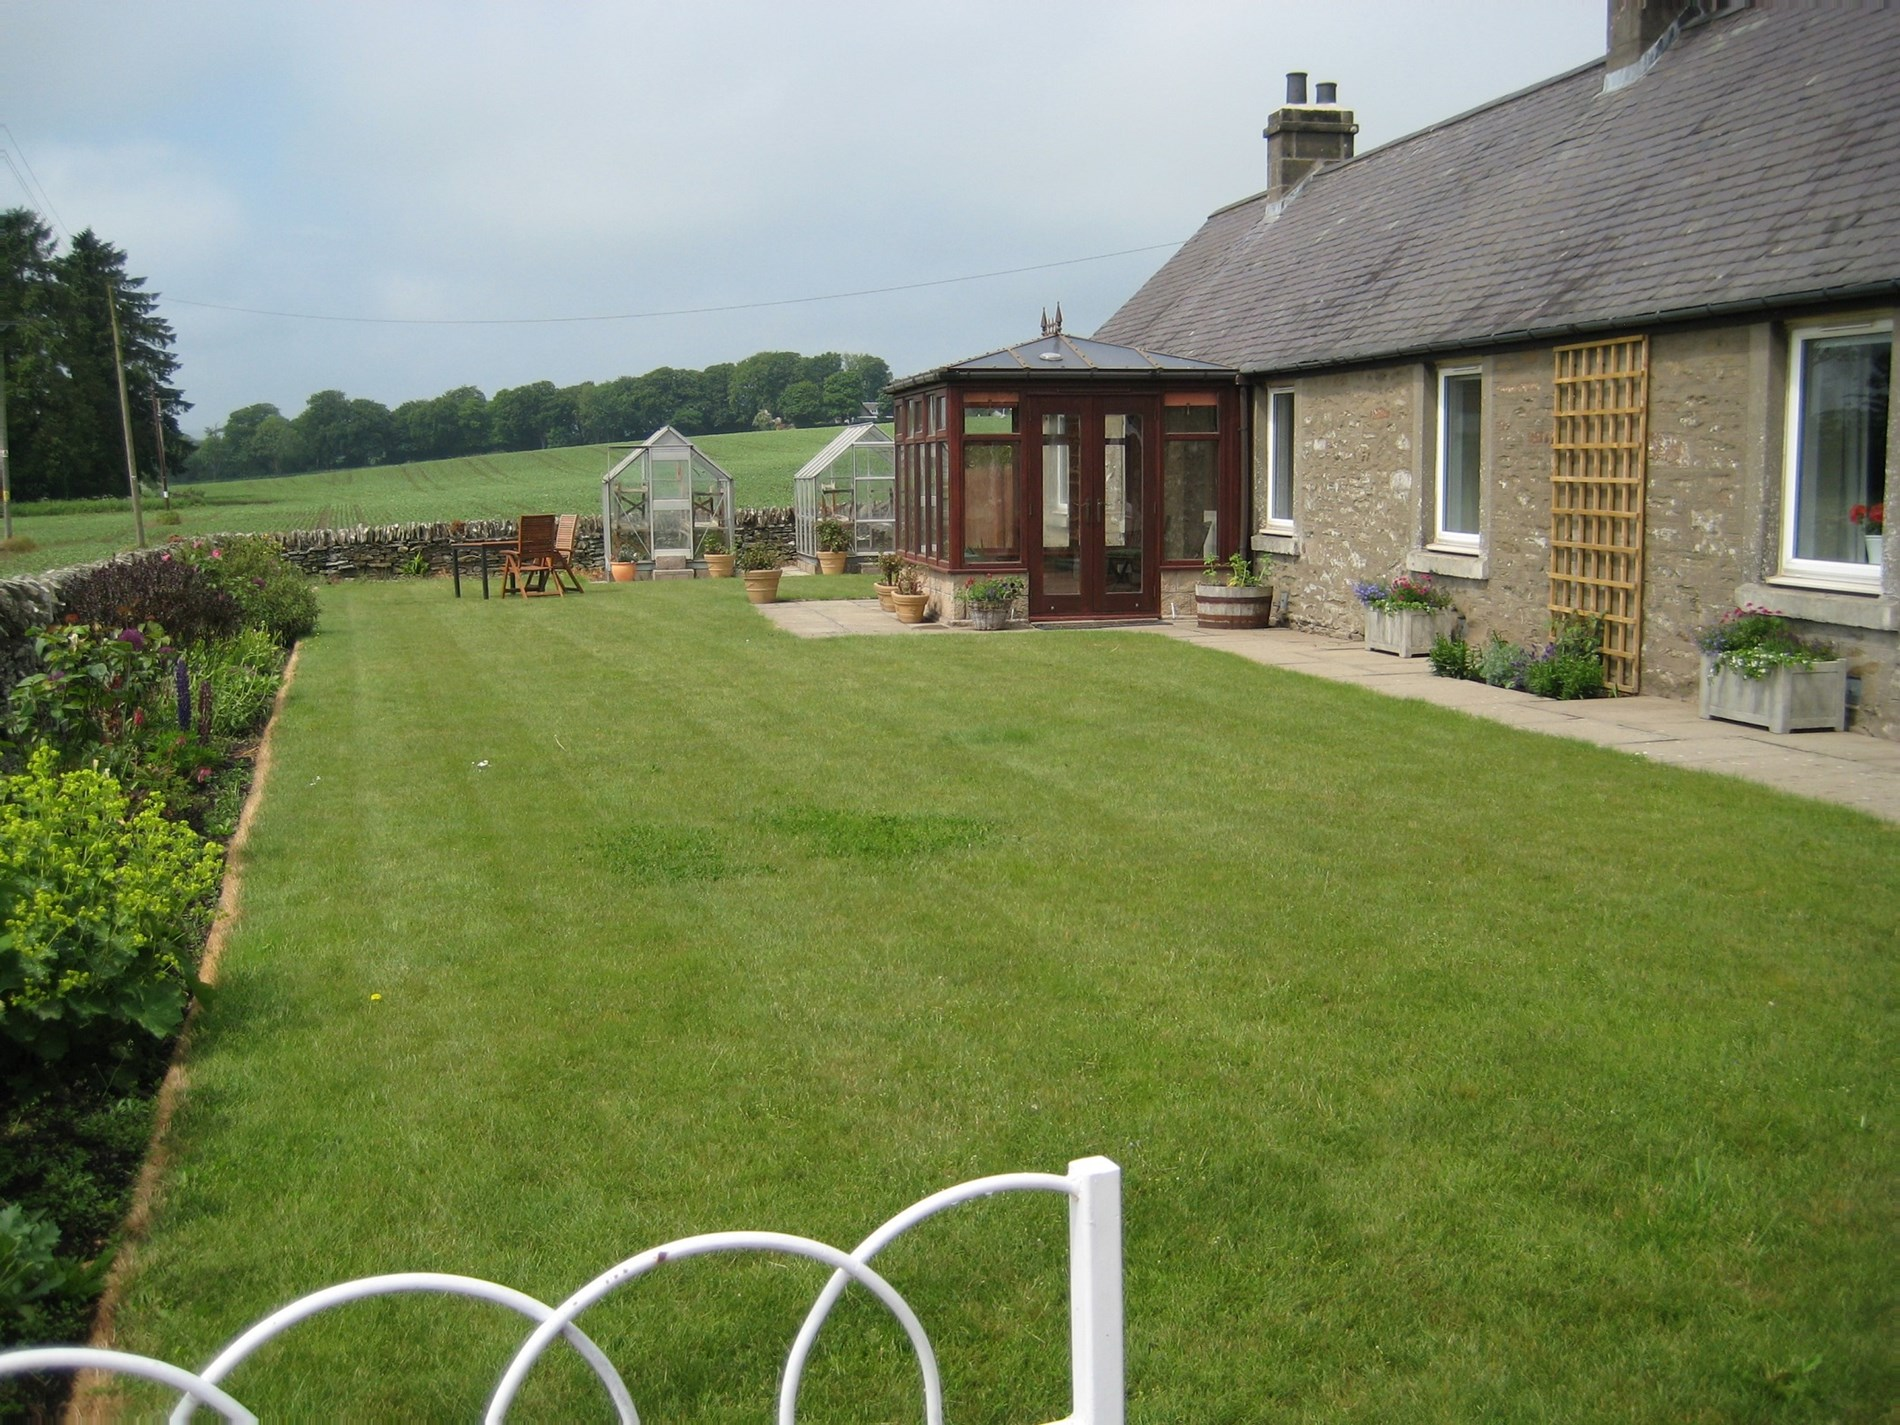 2 Bedroom Cottage in Dundee, Perthshire, Angus and Fife